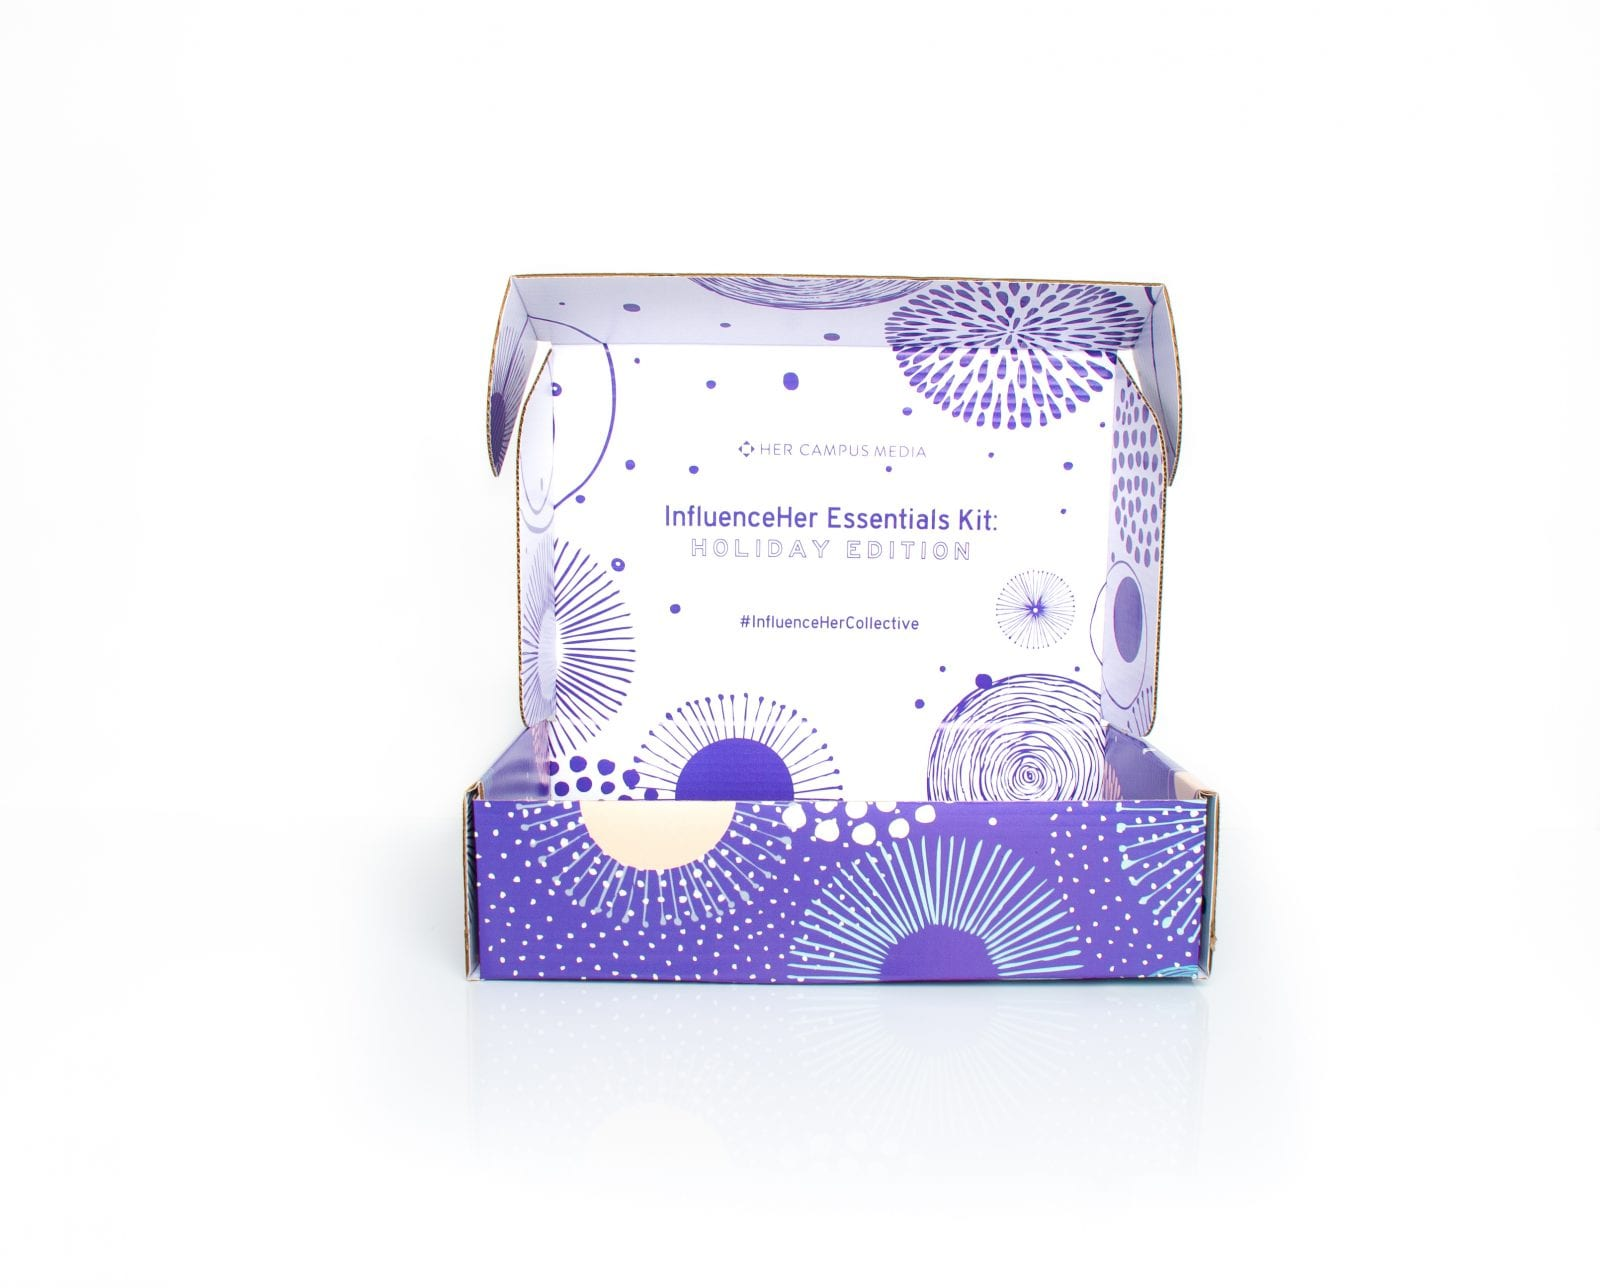 """colorful box that reads """"InfluenceHer Essestials Kit: Holiday Edition"""" on the inside flap"""